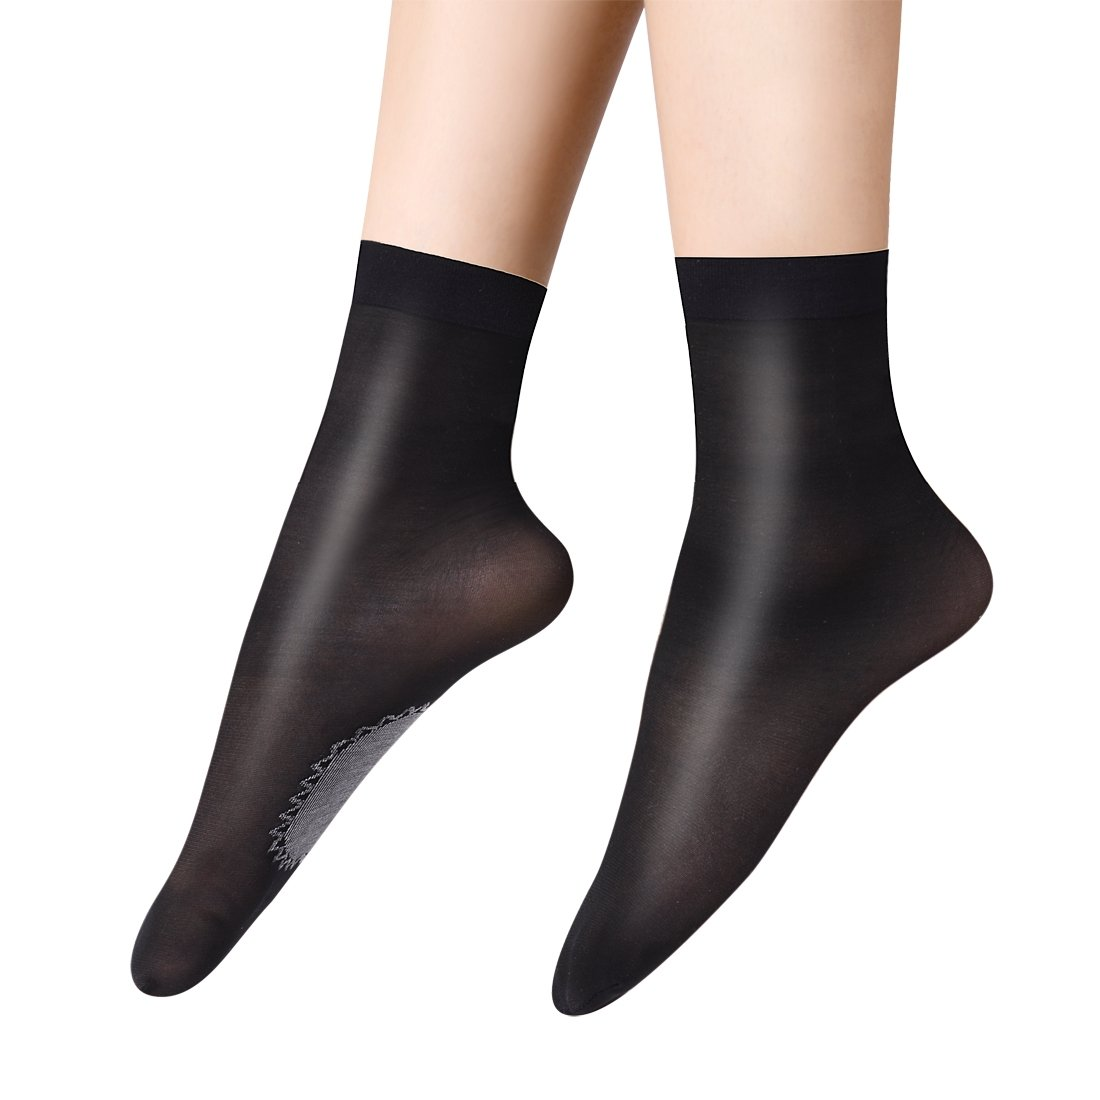 Anliceform Women Fashion Sexy Silky Socks, Anti-Slip Cotton Sole Sheer Ankle High Tights Hosiery Socks